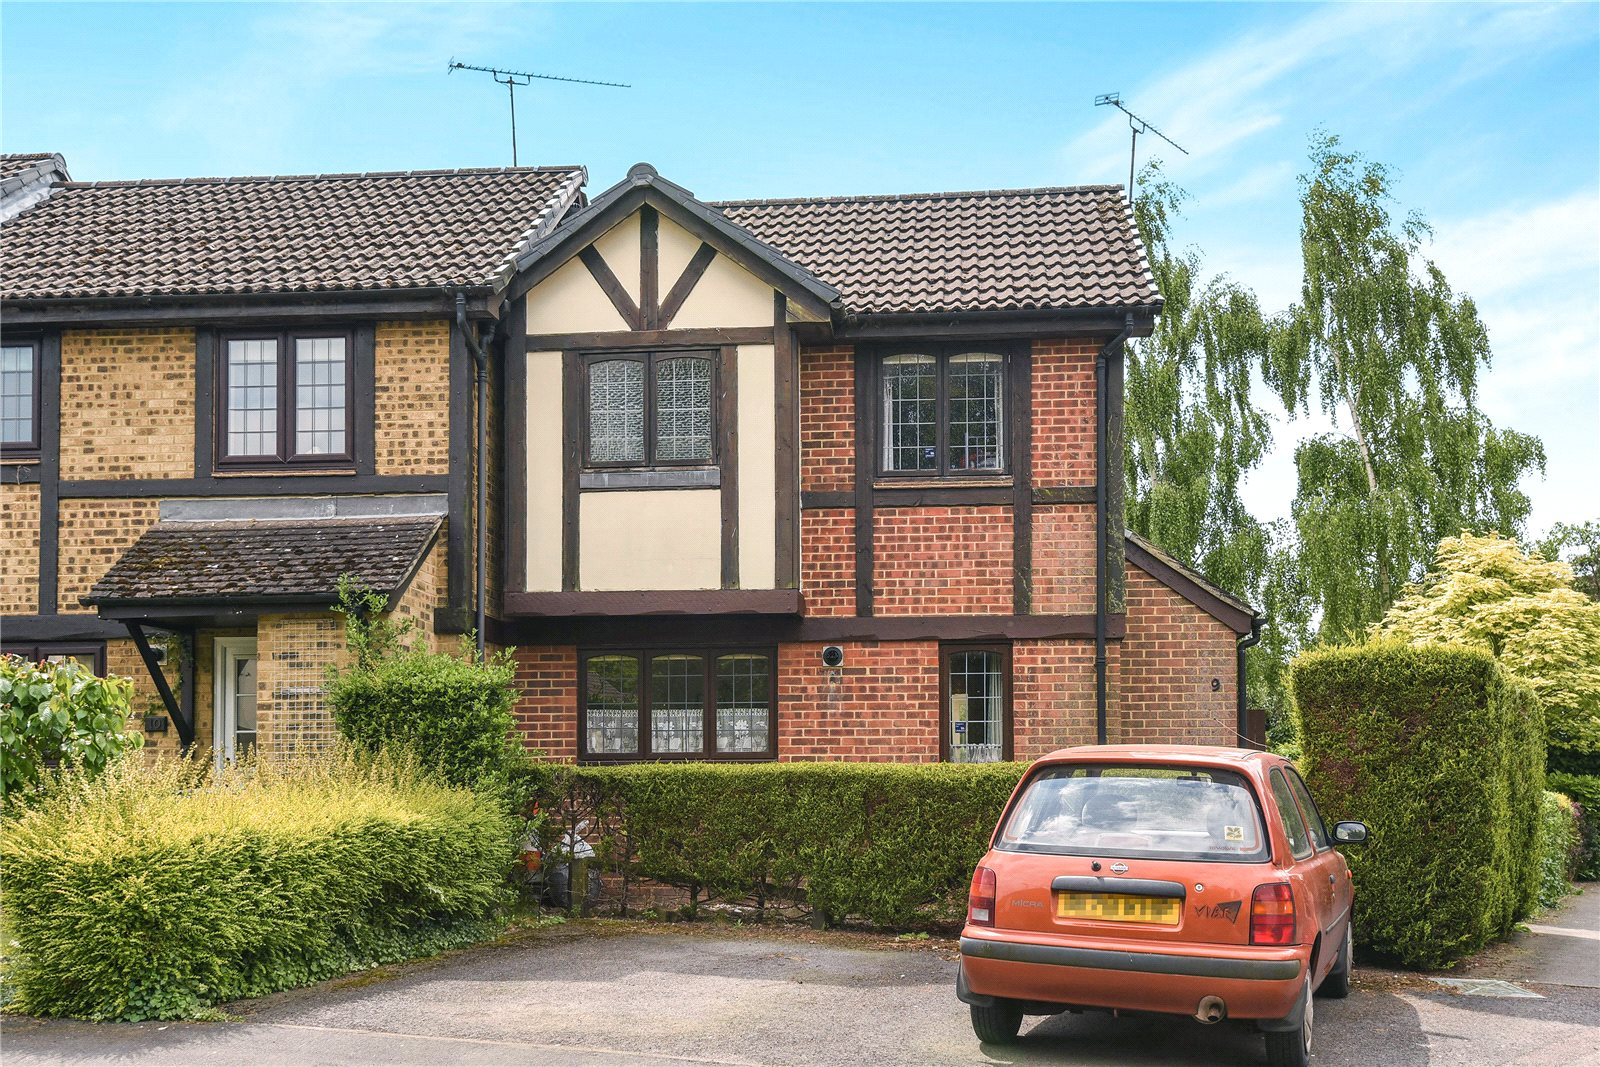 2 Bedrooms End Of Terrace House for sale in Morley Close, Yateley, Hampshire, GU46